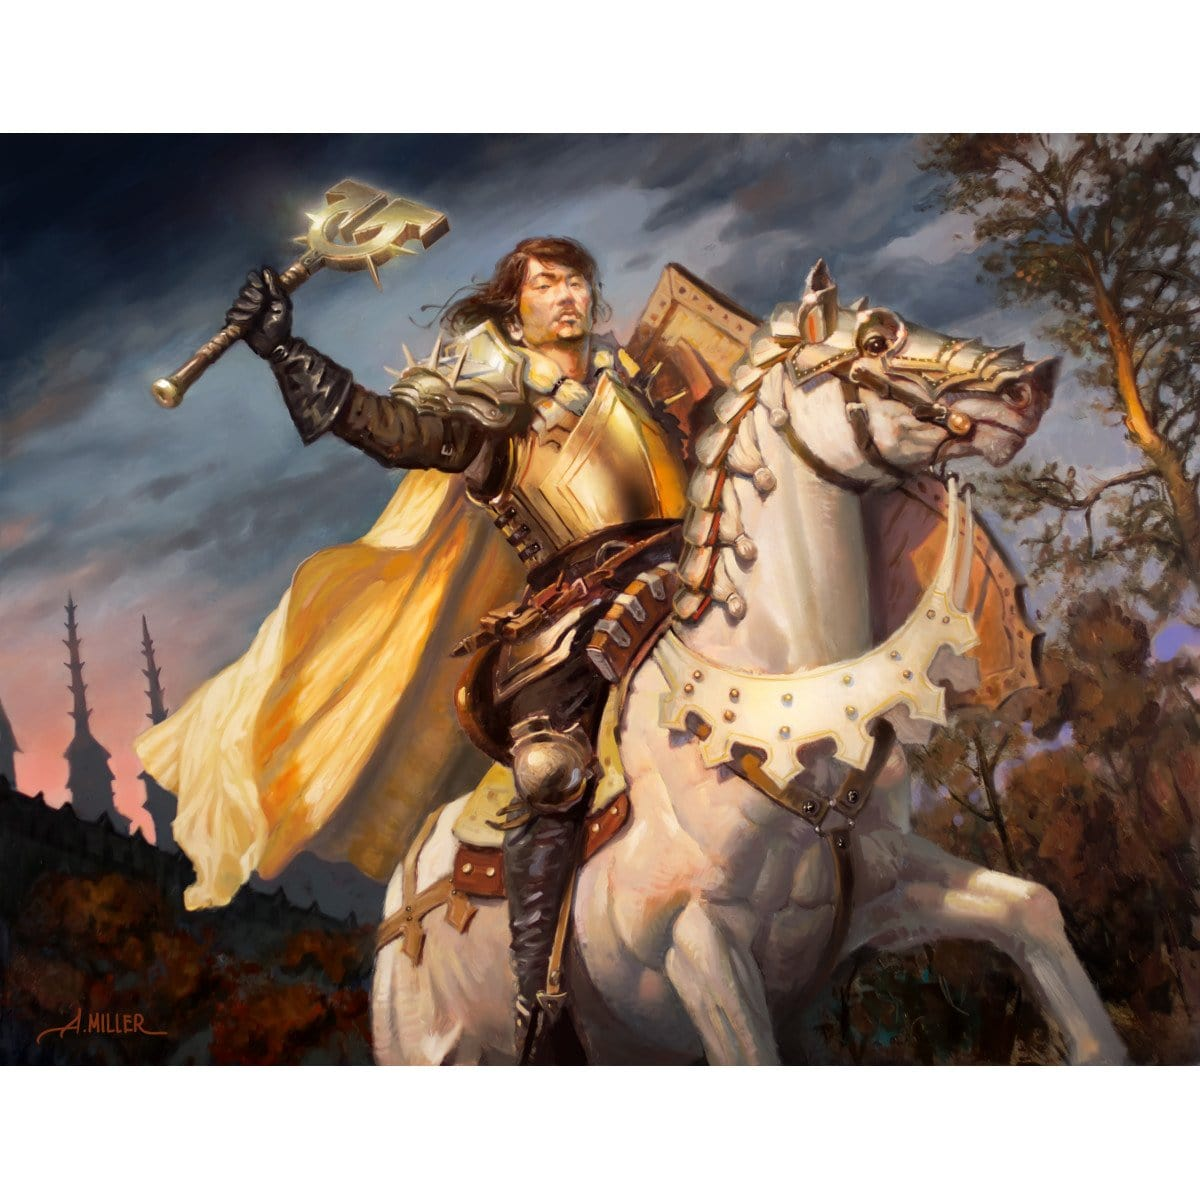 Faithbearer Paladin Print - Print - Original Magic Art - Accessories for Magic the Gathering and other card games